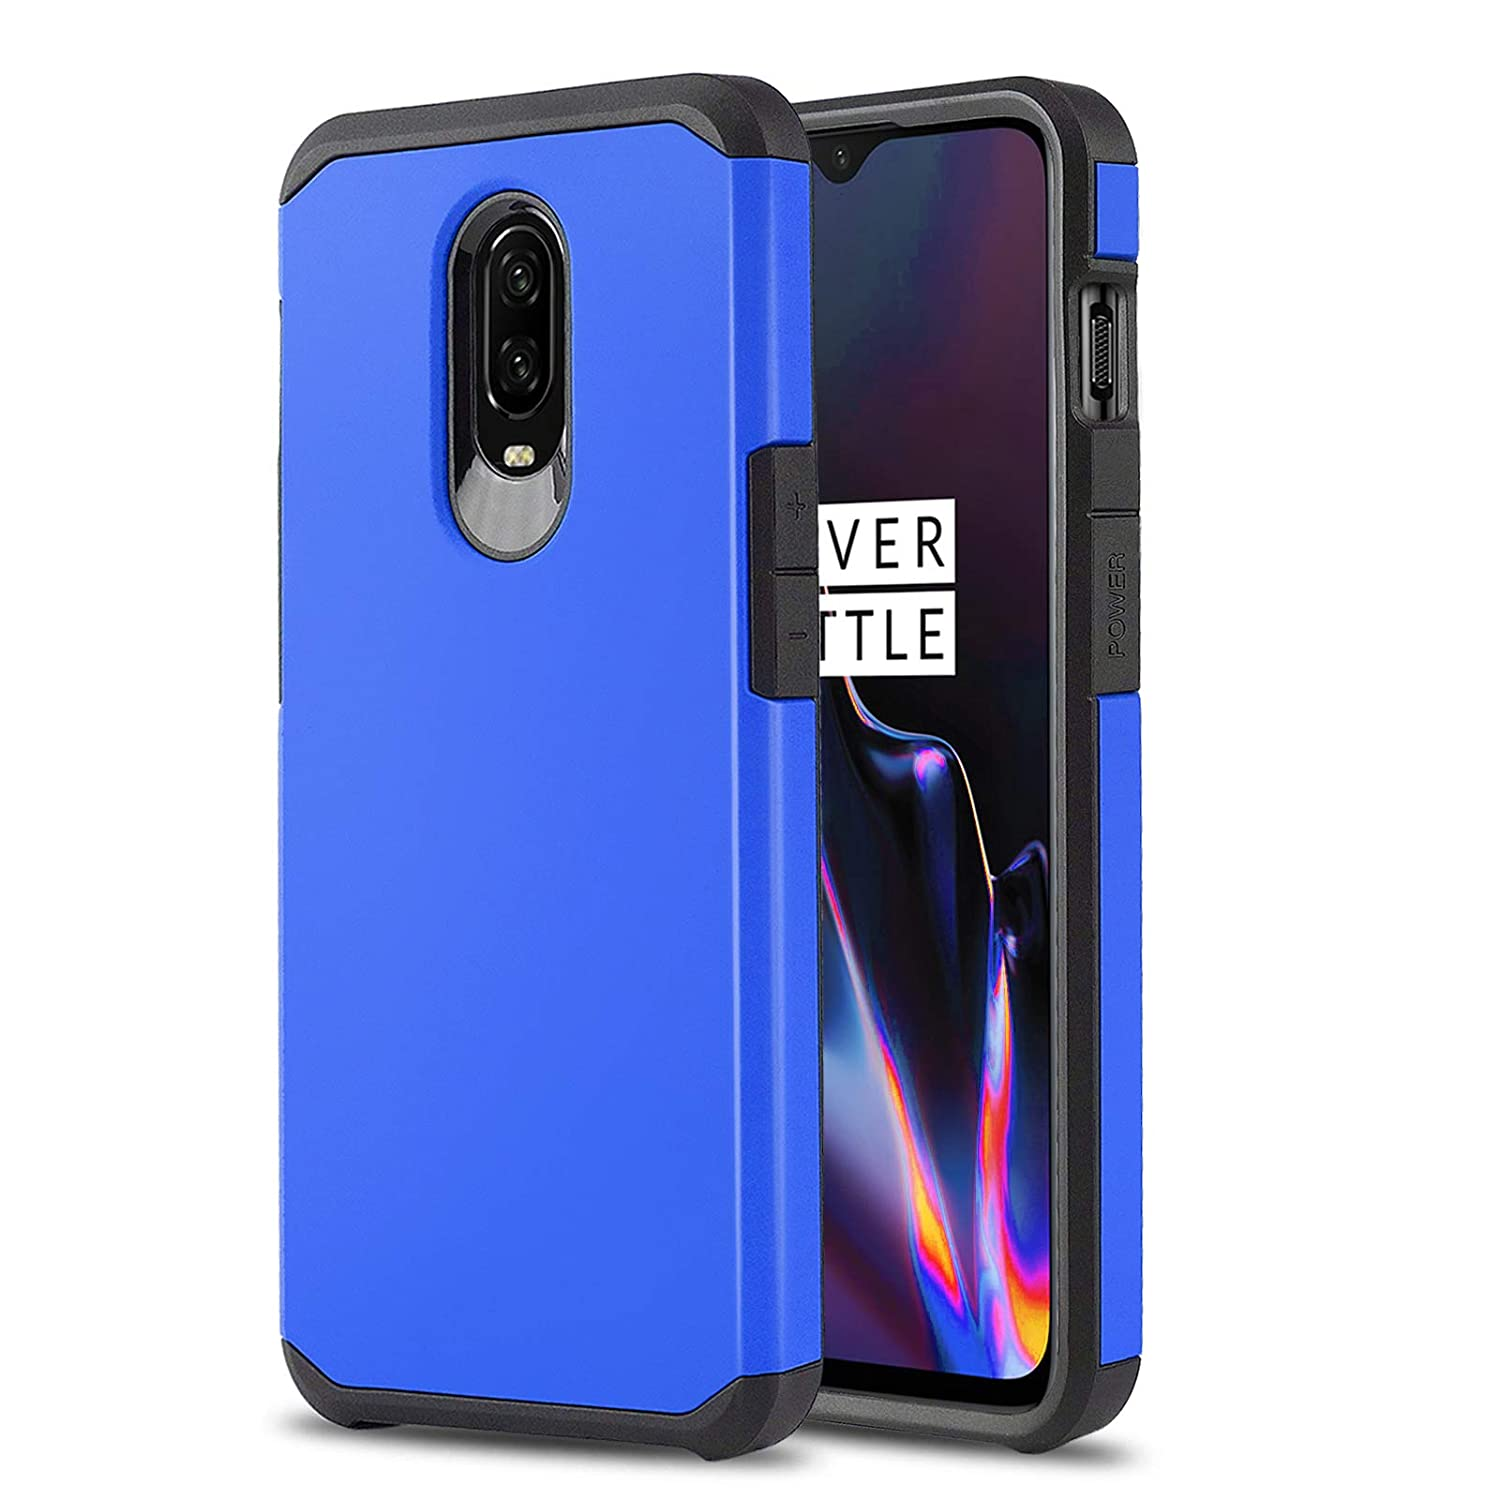 Phone Case for [ONEPLUS 6T (T-Mobile)], [DuoTEK Series][Blue] Shockproof  Dual Layer Hybrid Hard Cover [Impact Resistant][Defender] for OnePlus 6T